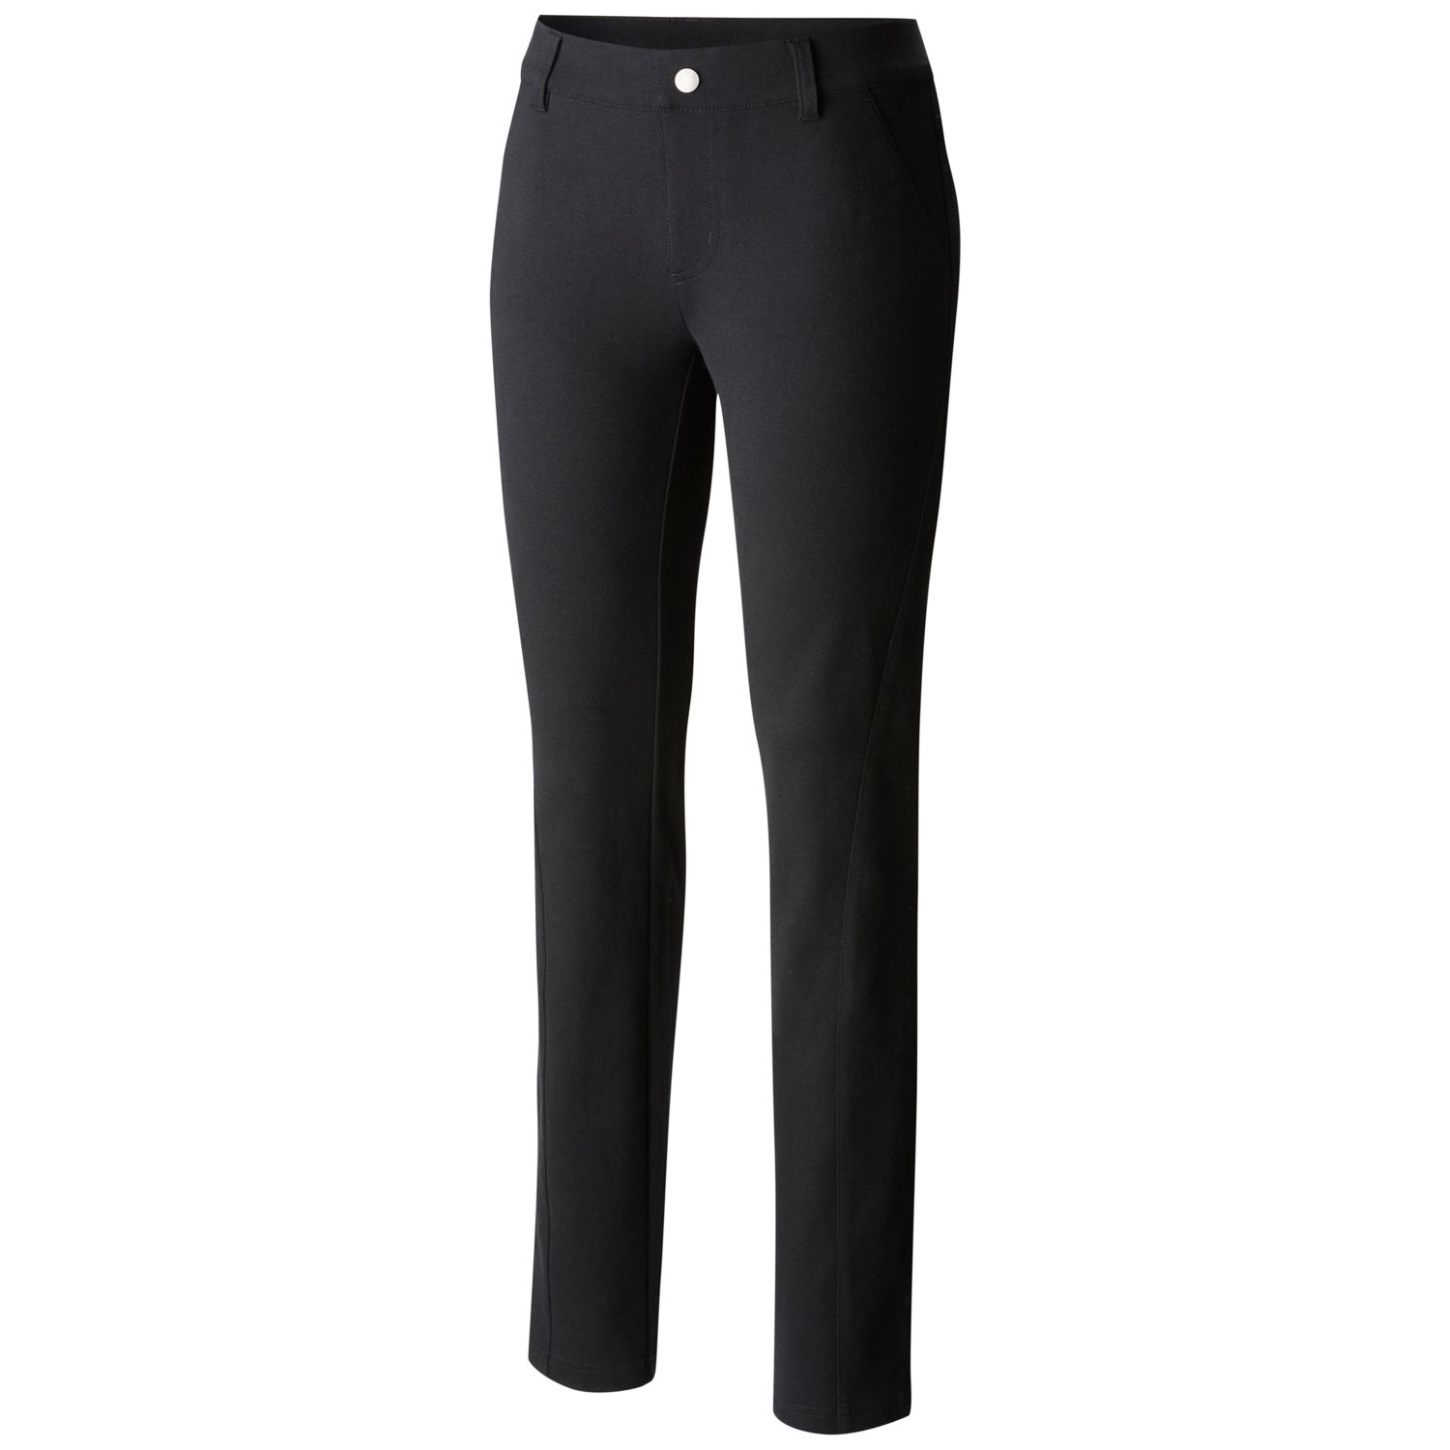 Columbia Women's Outdoor Ponte Trousers Black-30